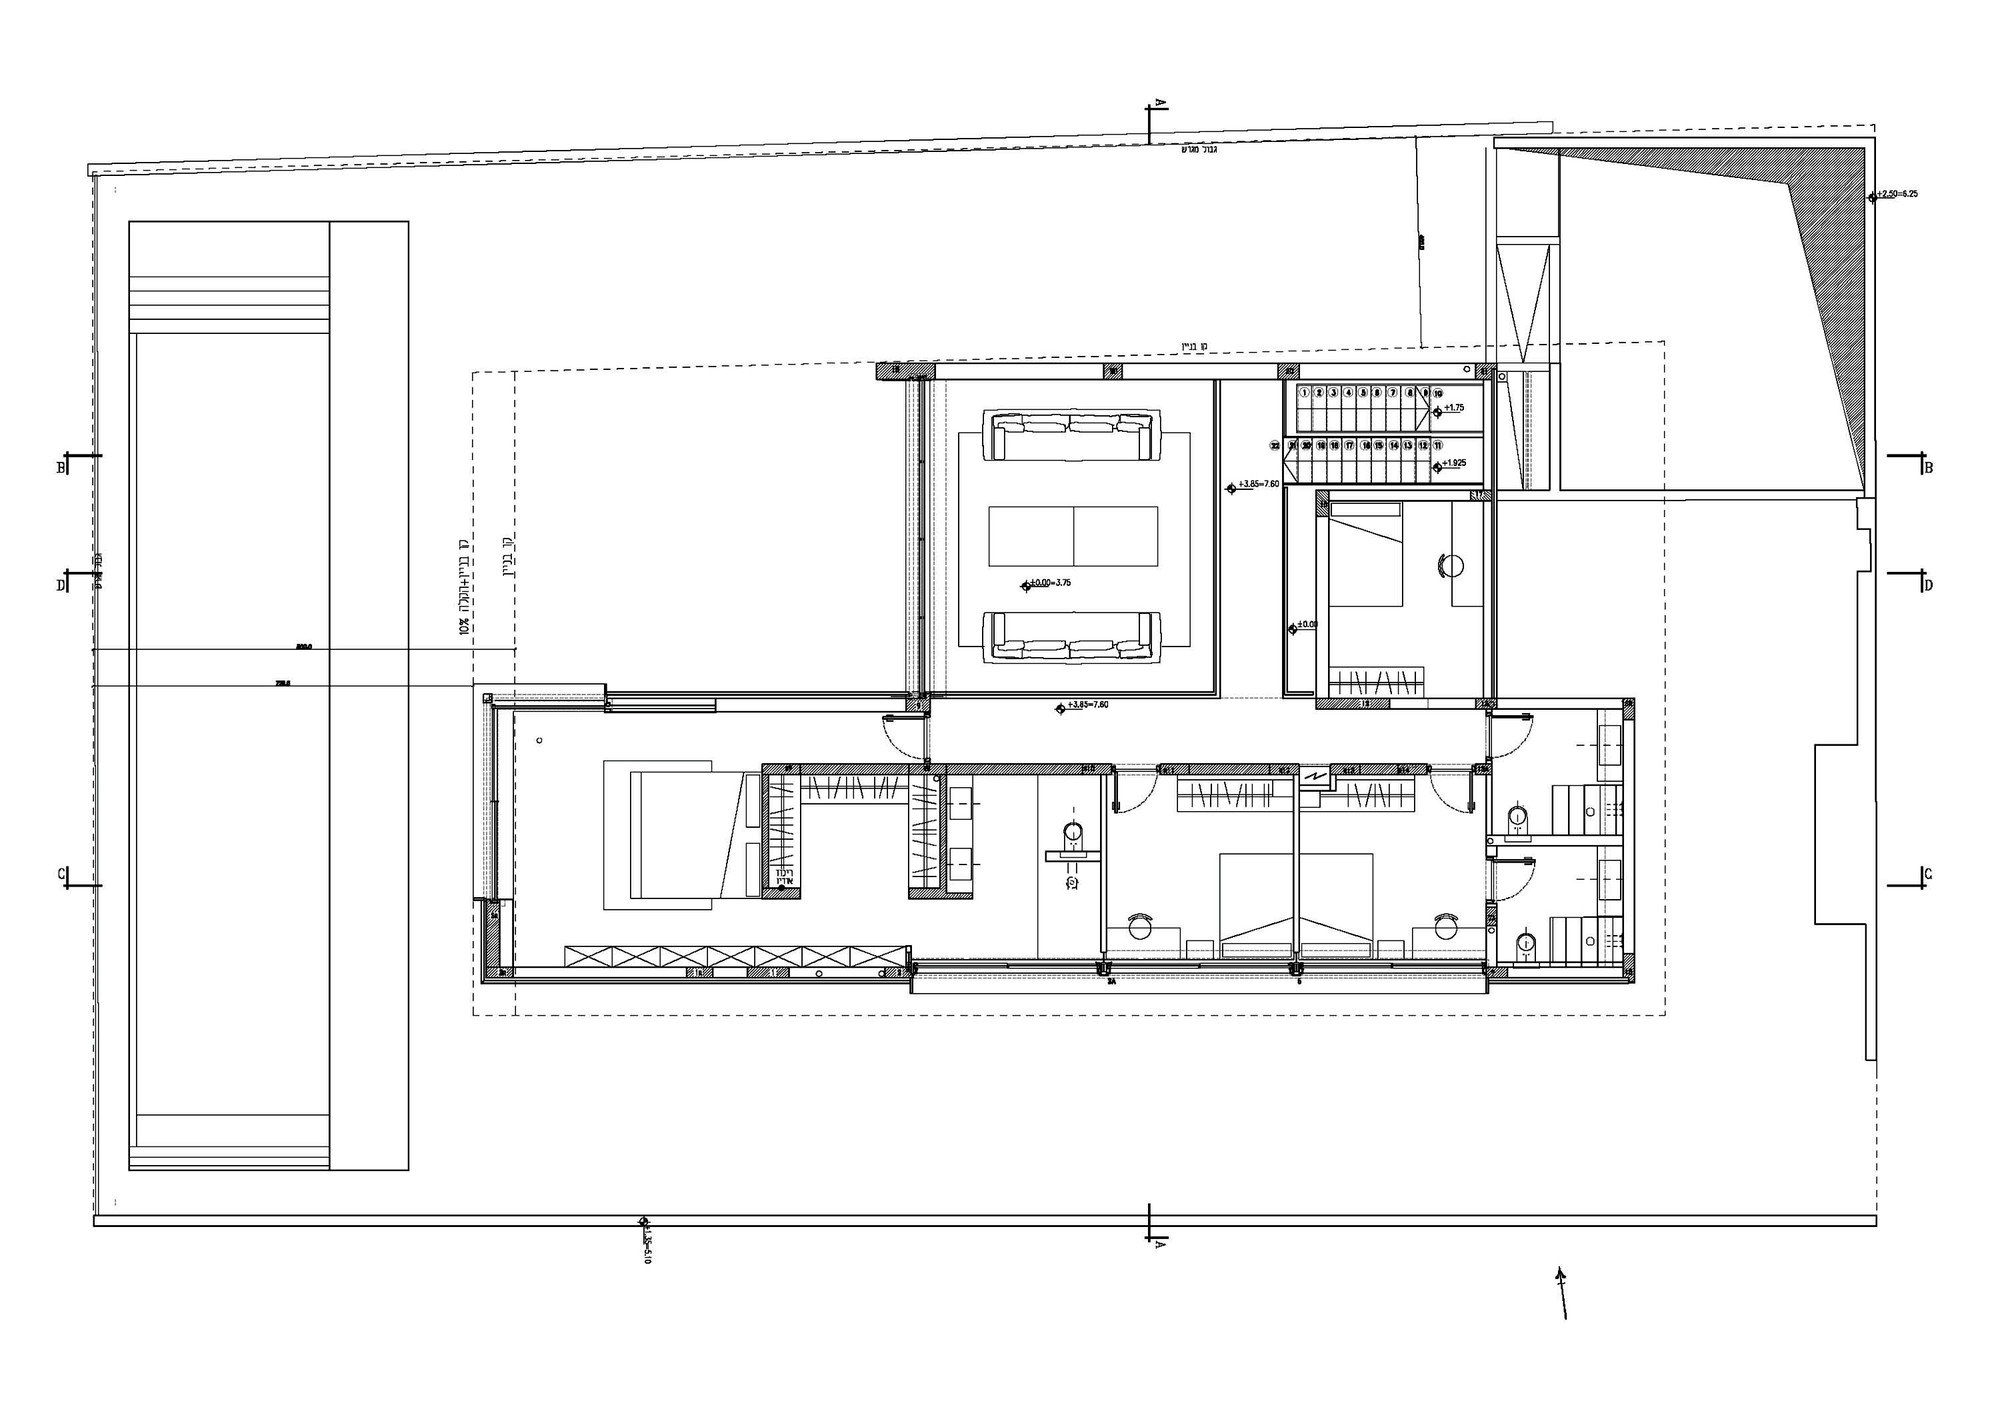 56280e61e58ece127a0002ae House On The Sea Pitsou Kedem Architects First Floor Plan on Floor Plan Drawing